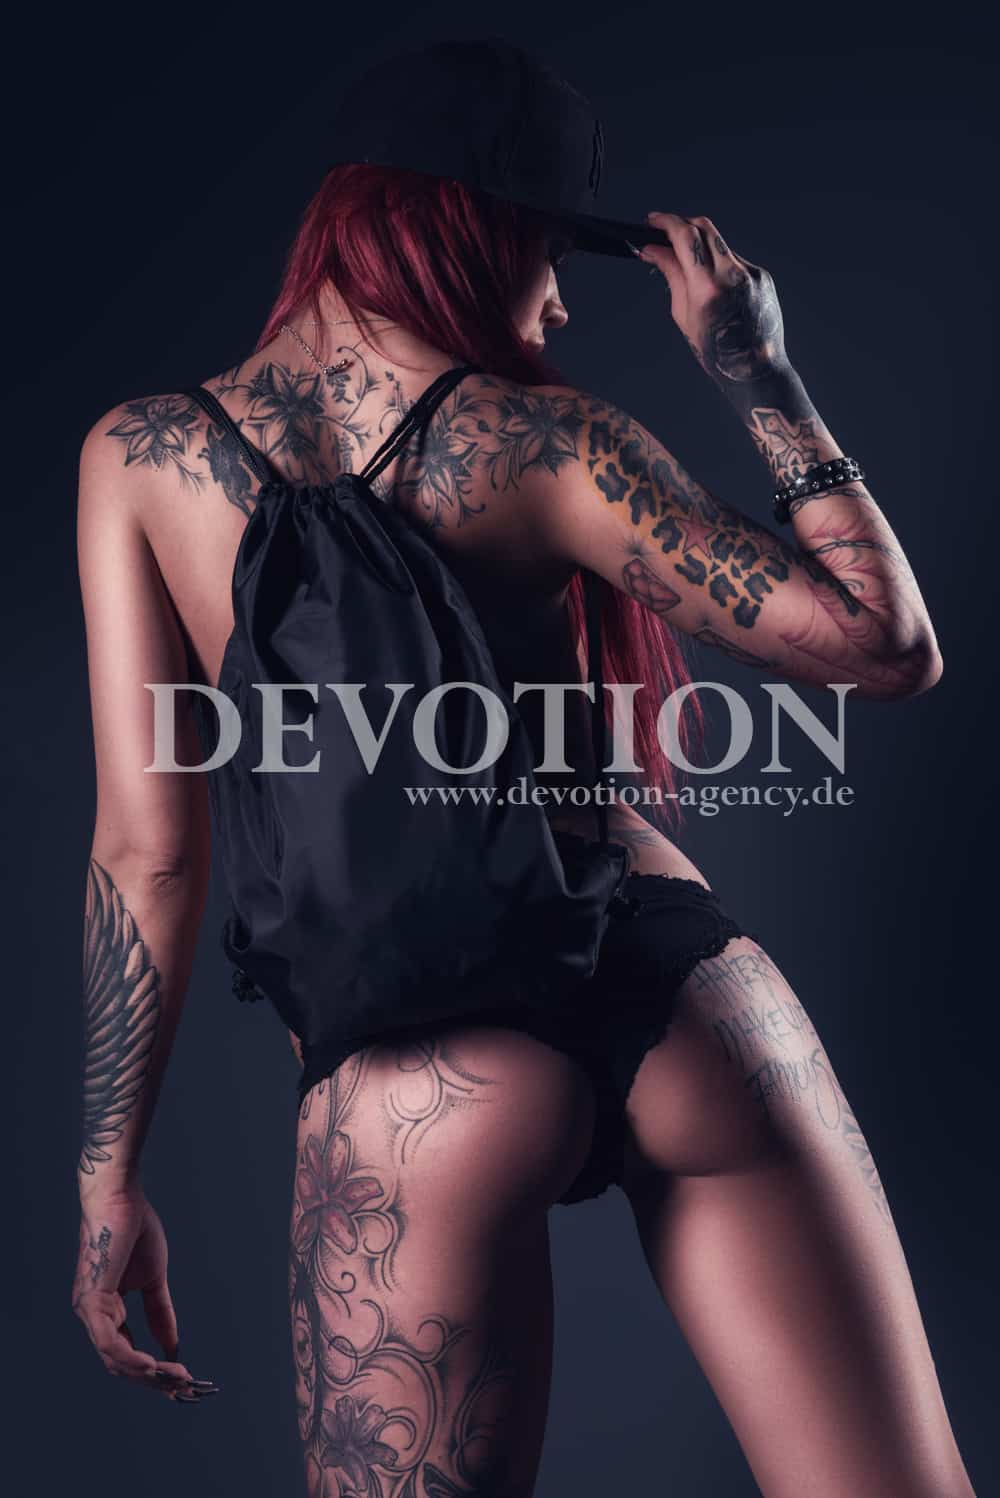 Devotion-Agency Stripperin